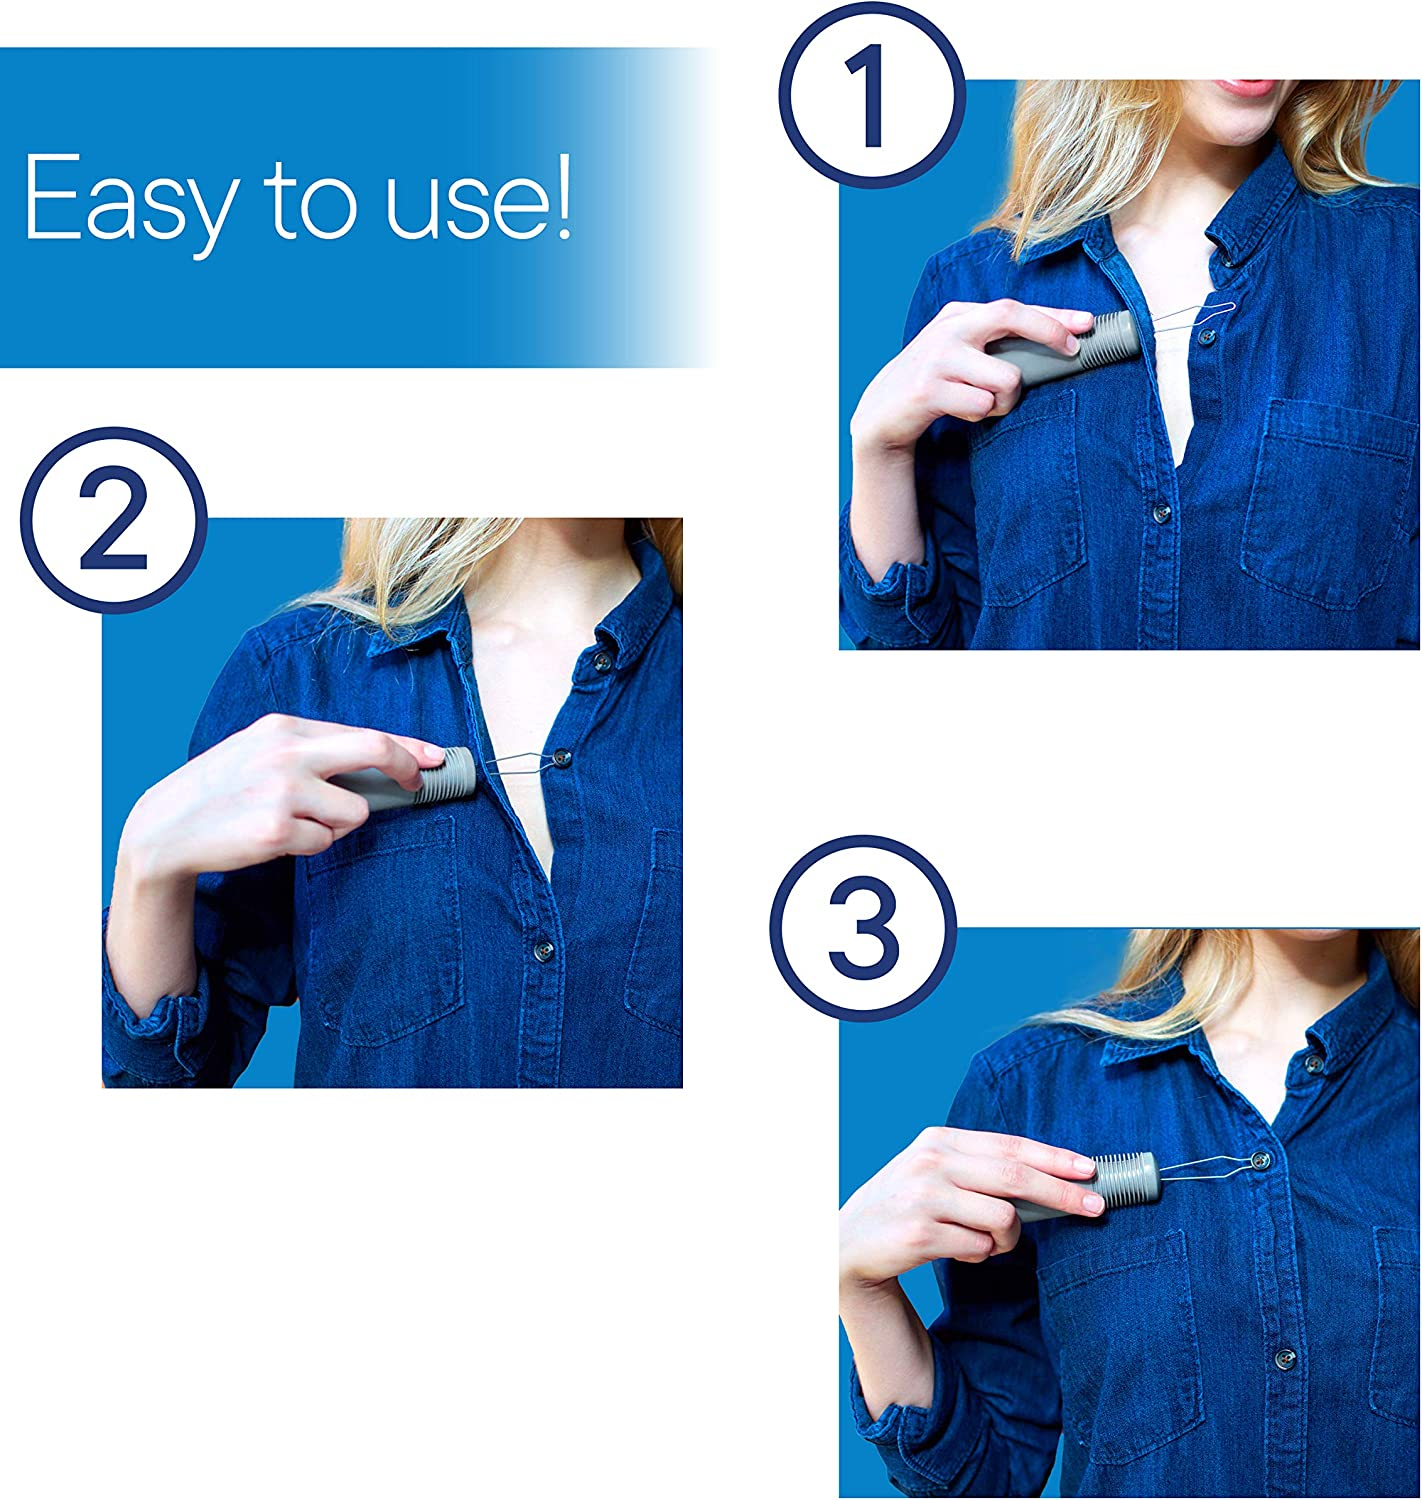 RMS Button Hook with Zipper Pull - Button Assist Device with Comfort & Wide Grip, Shirt & Coat Buttoning Aid Ideal for Limited Dexterity Caused by Arthritis (Grey): Health & Personal Care